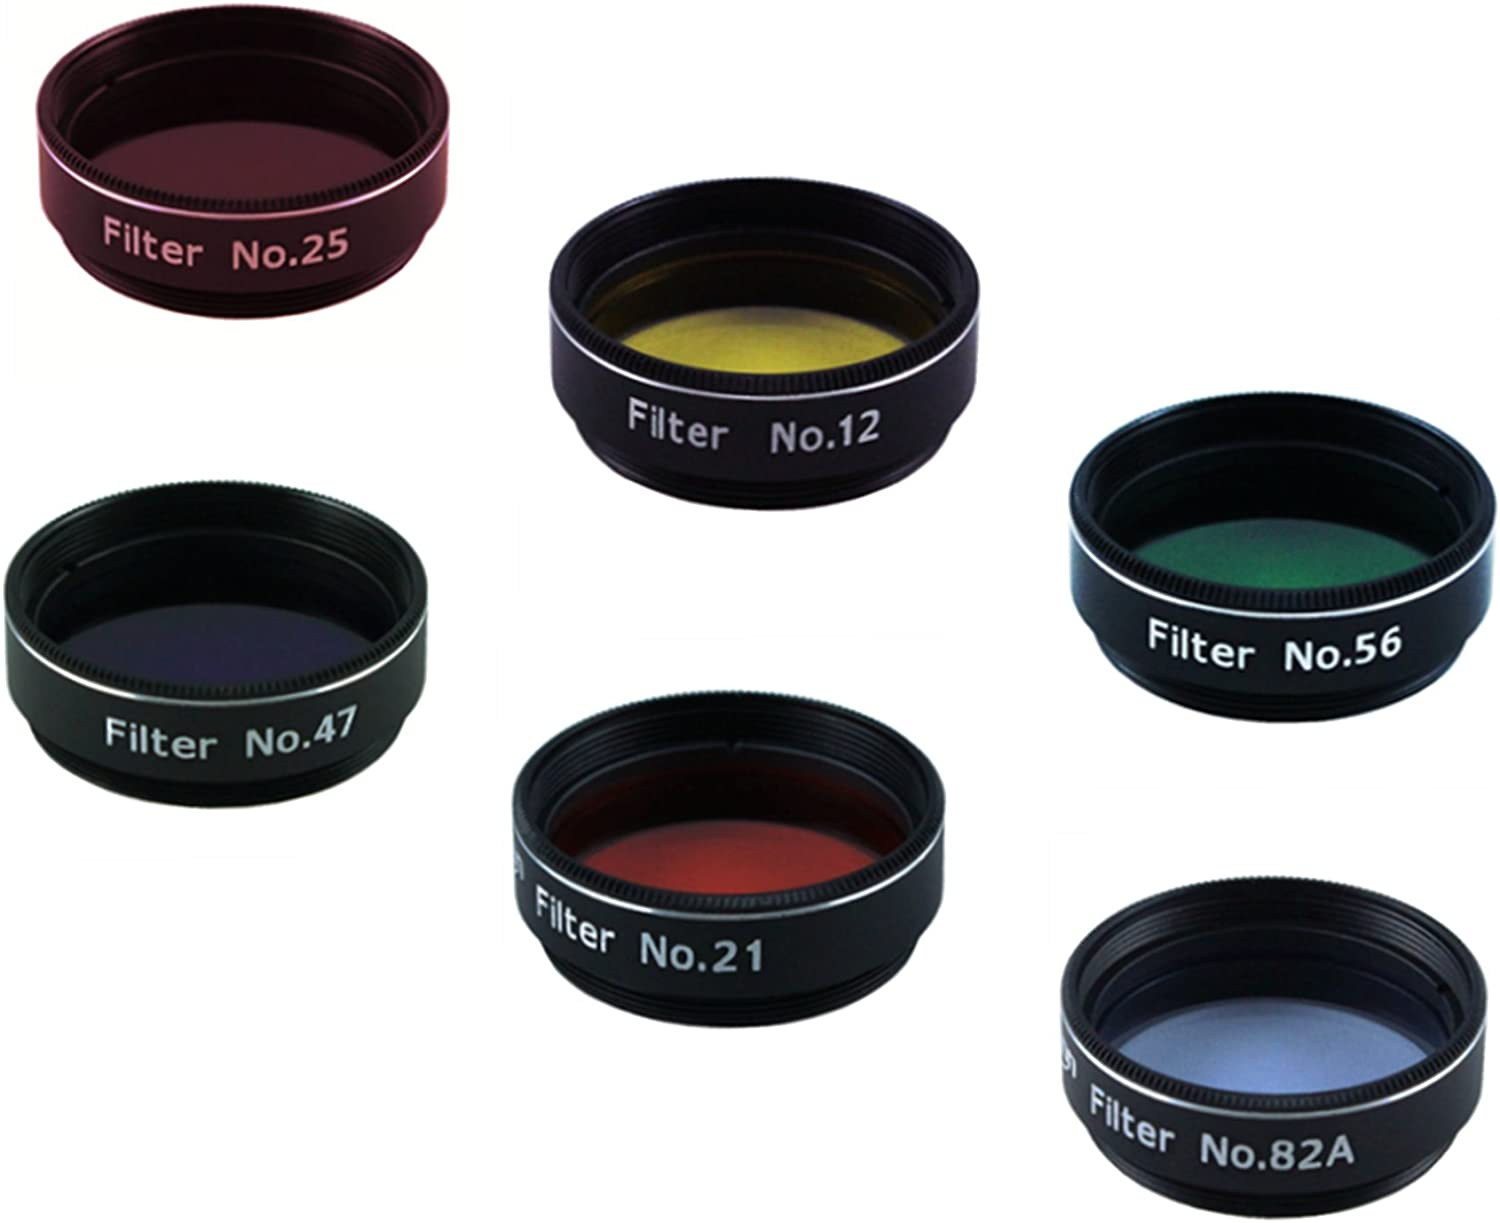 - Value Filter Pack Simply Screwed into The Thread on The Eyepiece 6 Pieces Astromania 1.25-Inch Color Filter Set